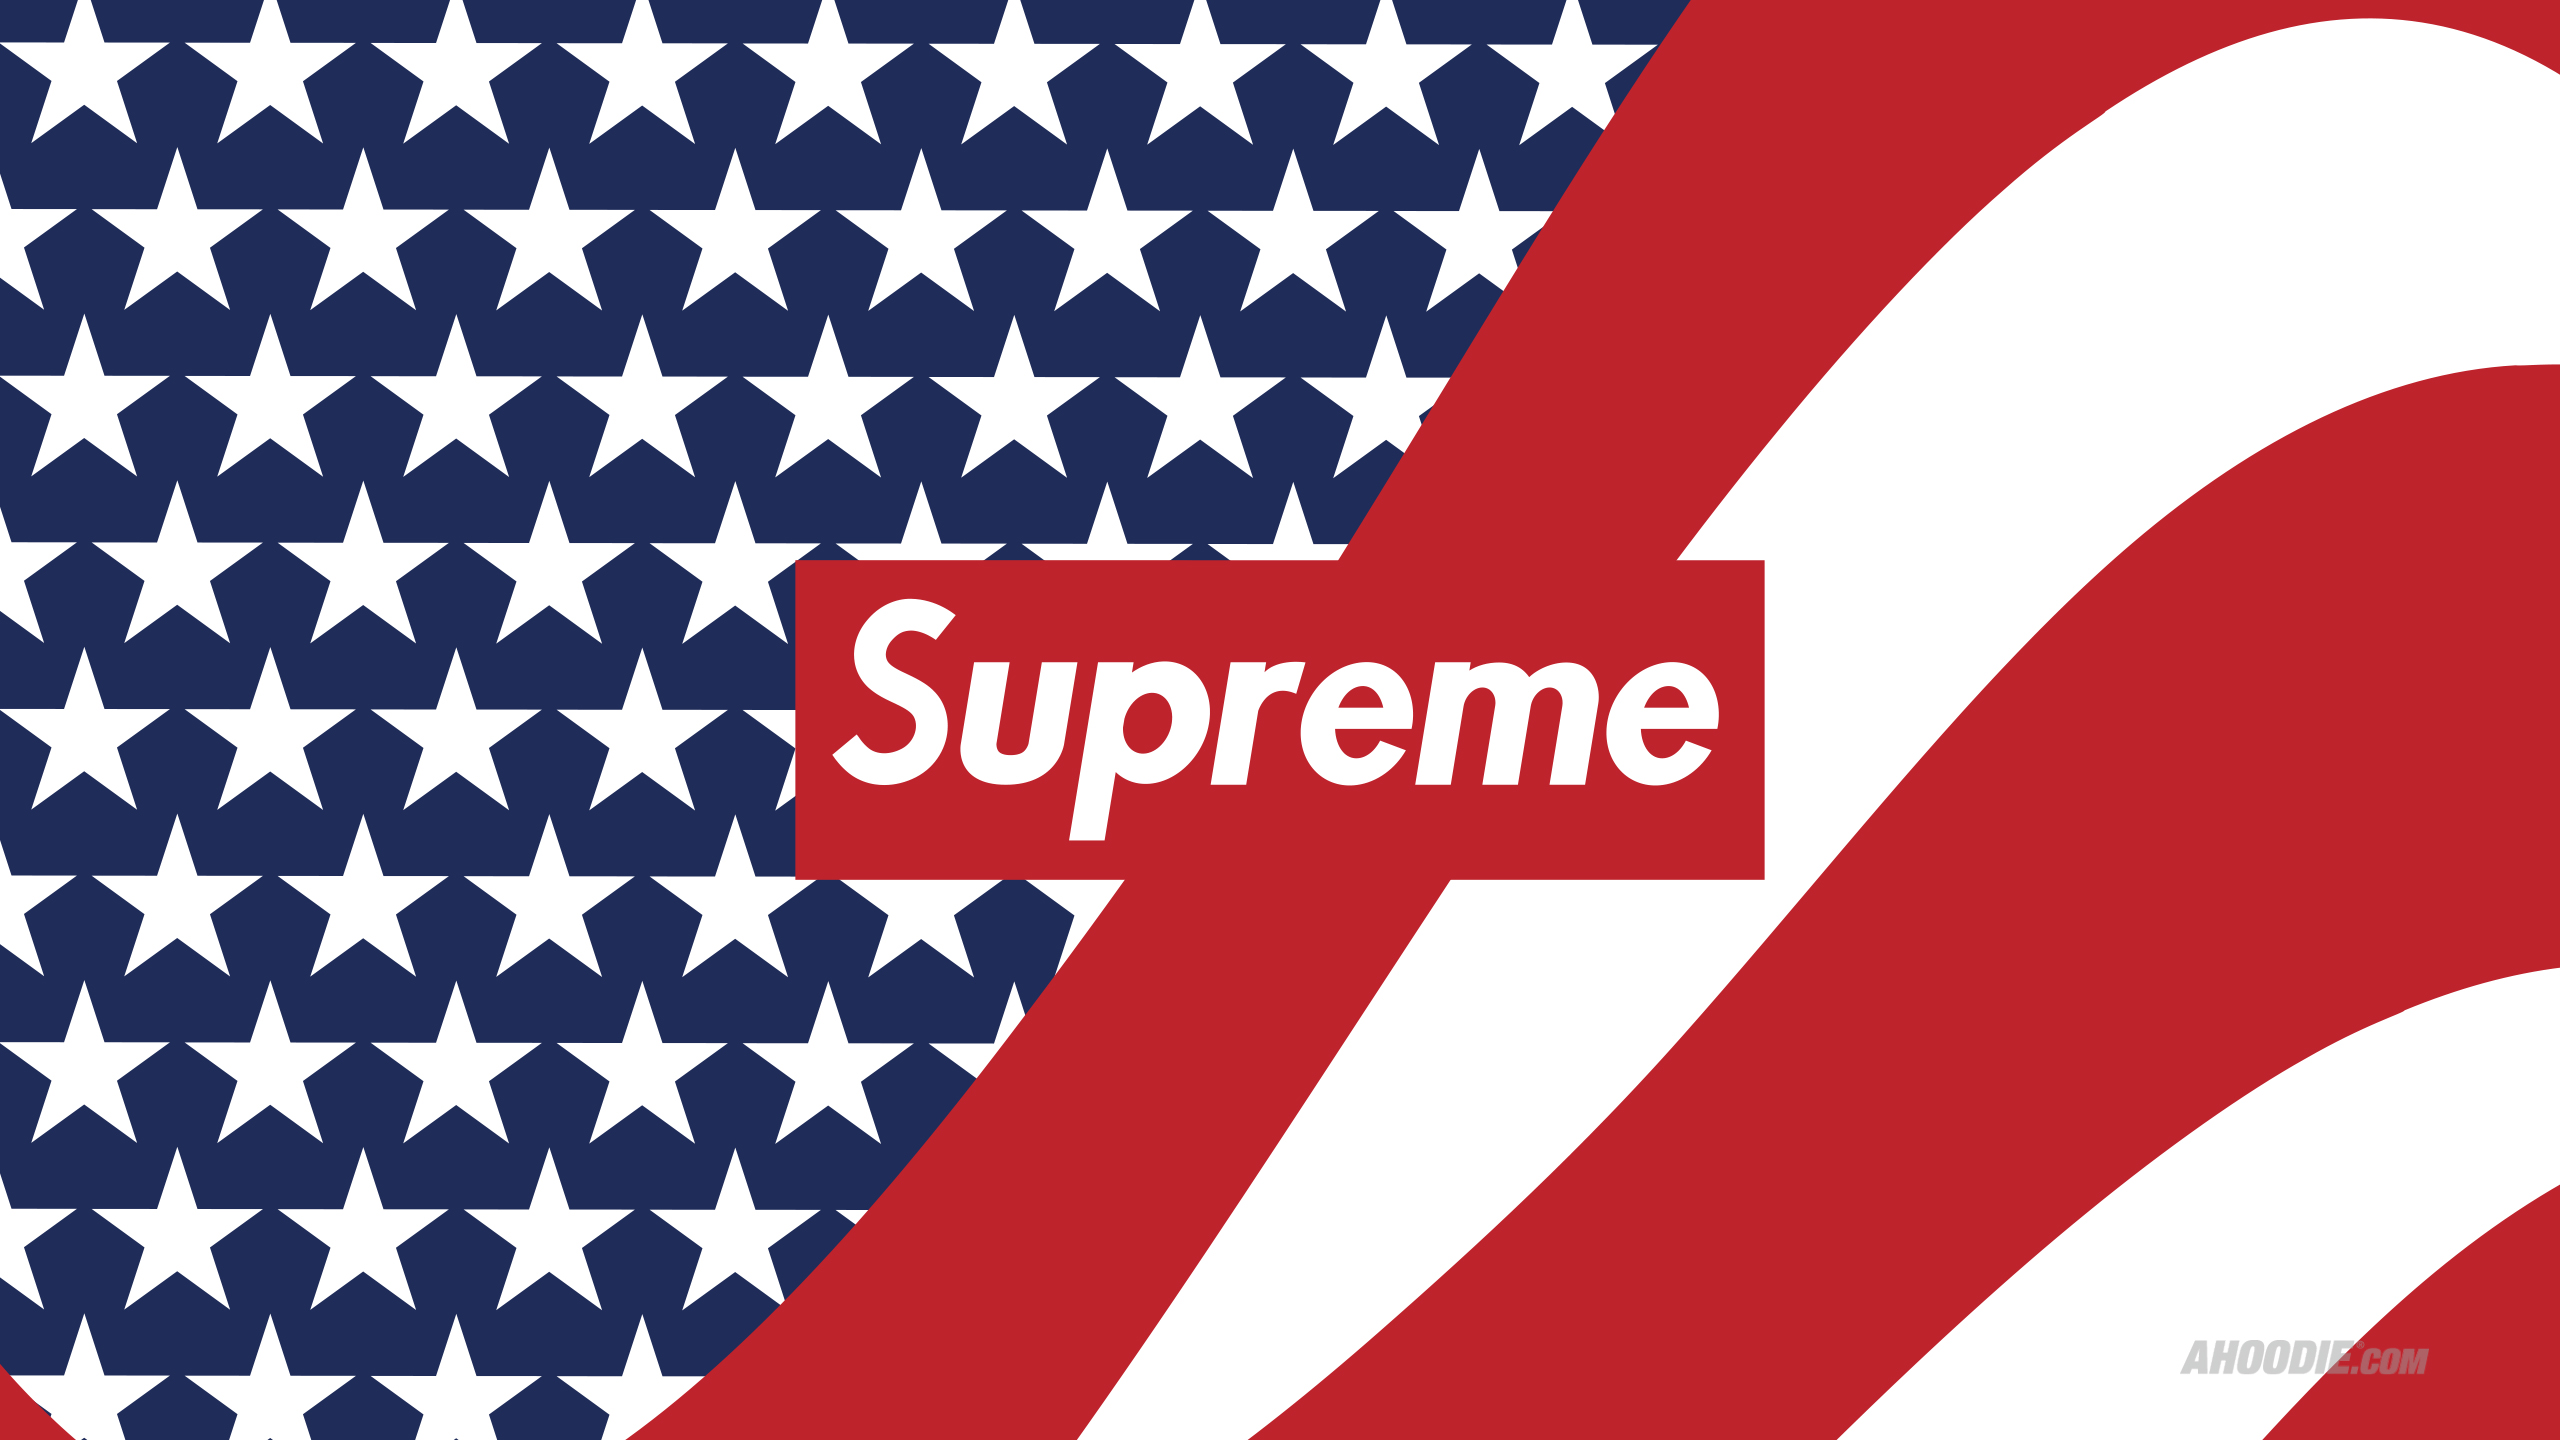 supreme wallpaper 2560x1440